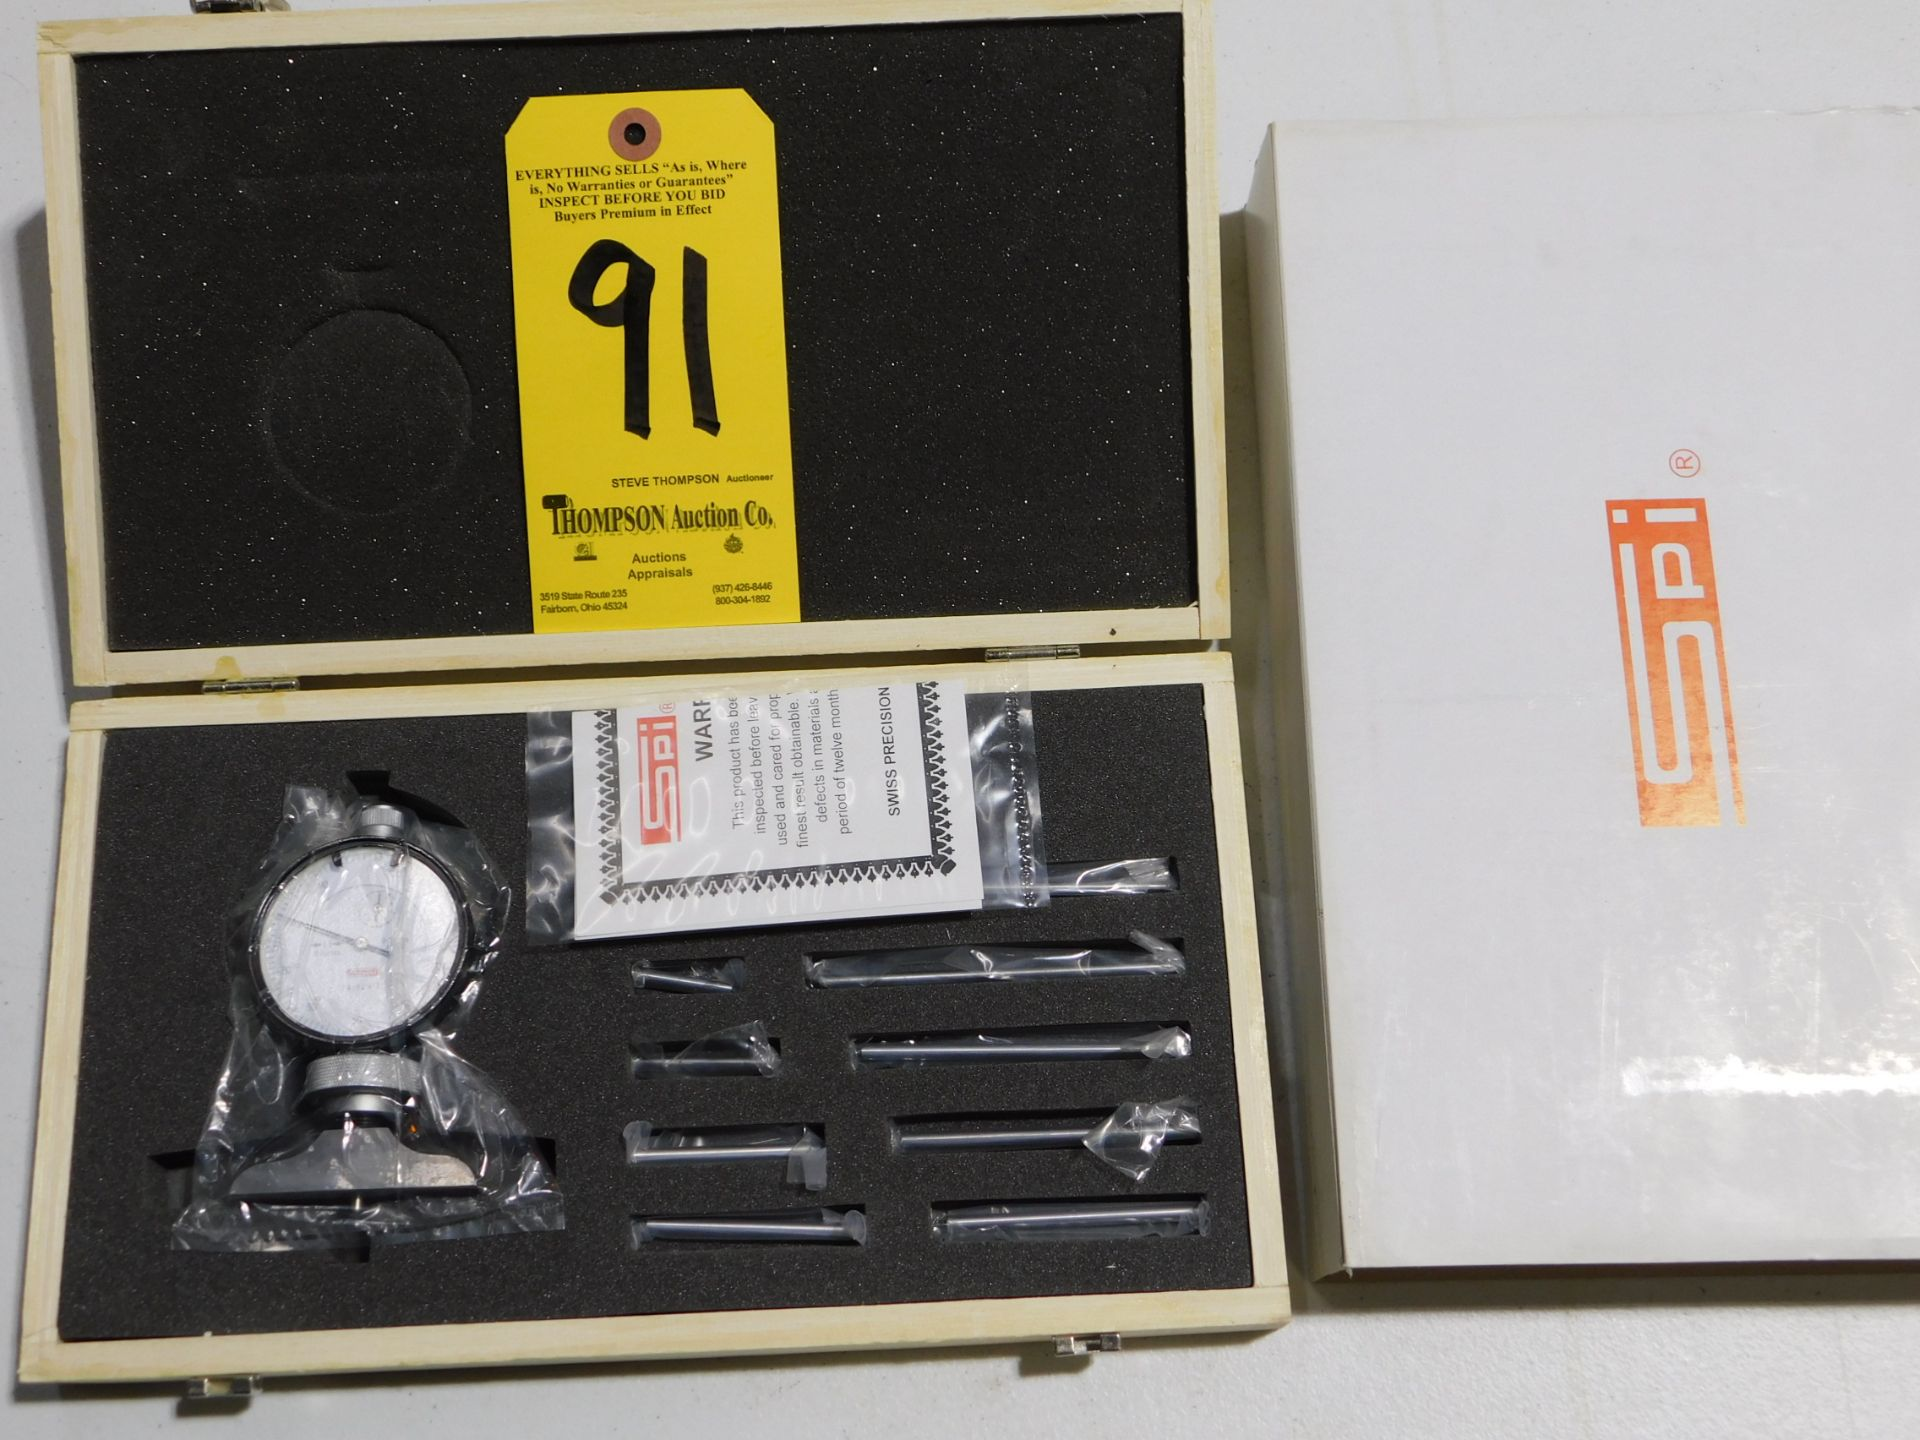 SPI 14-529-2 Dial Depth Gage, Lot Location 3204 Olympia Dr. A, Lafayette, IN 47909